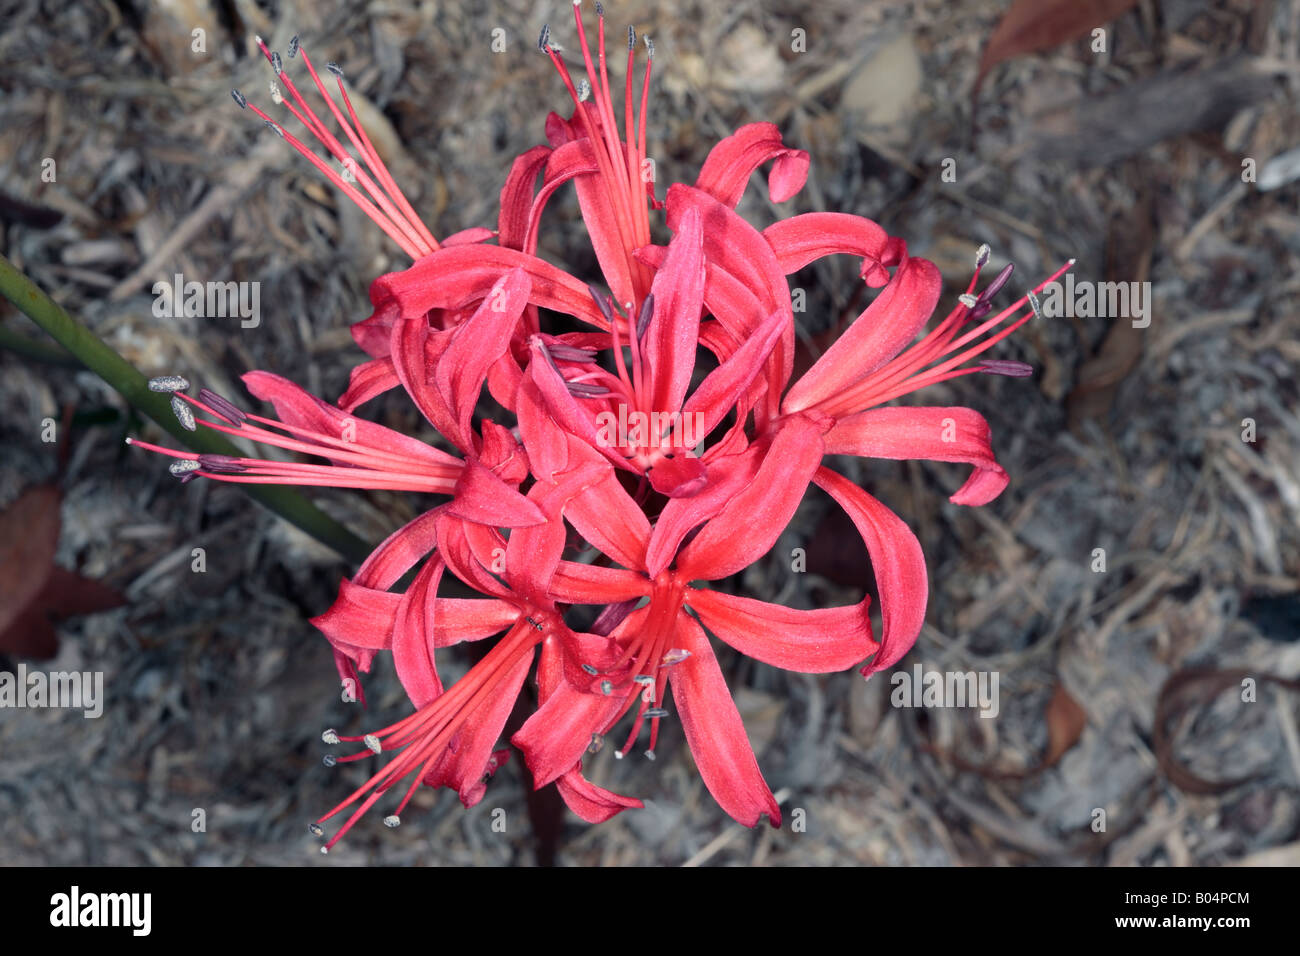 Red Nerina/ Red nerine/Guernsey Lily-Nerine sarniensis-Family Amaryllidaceae - Stock Image